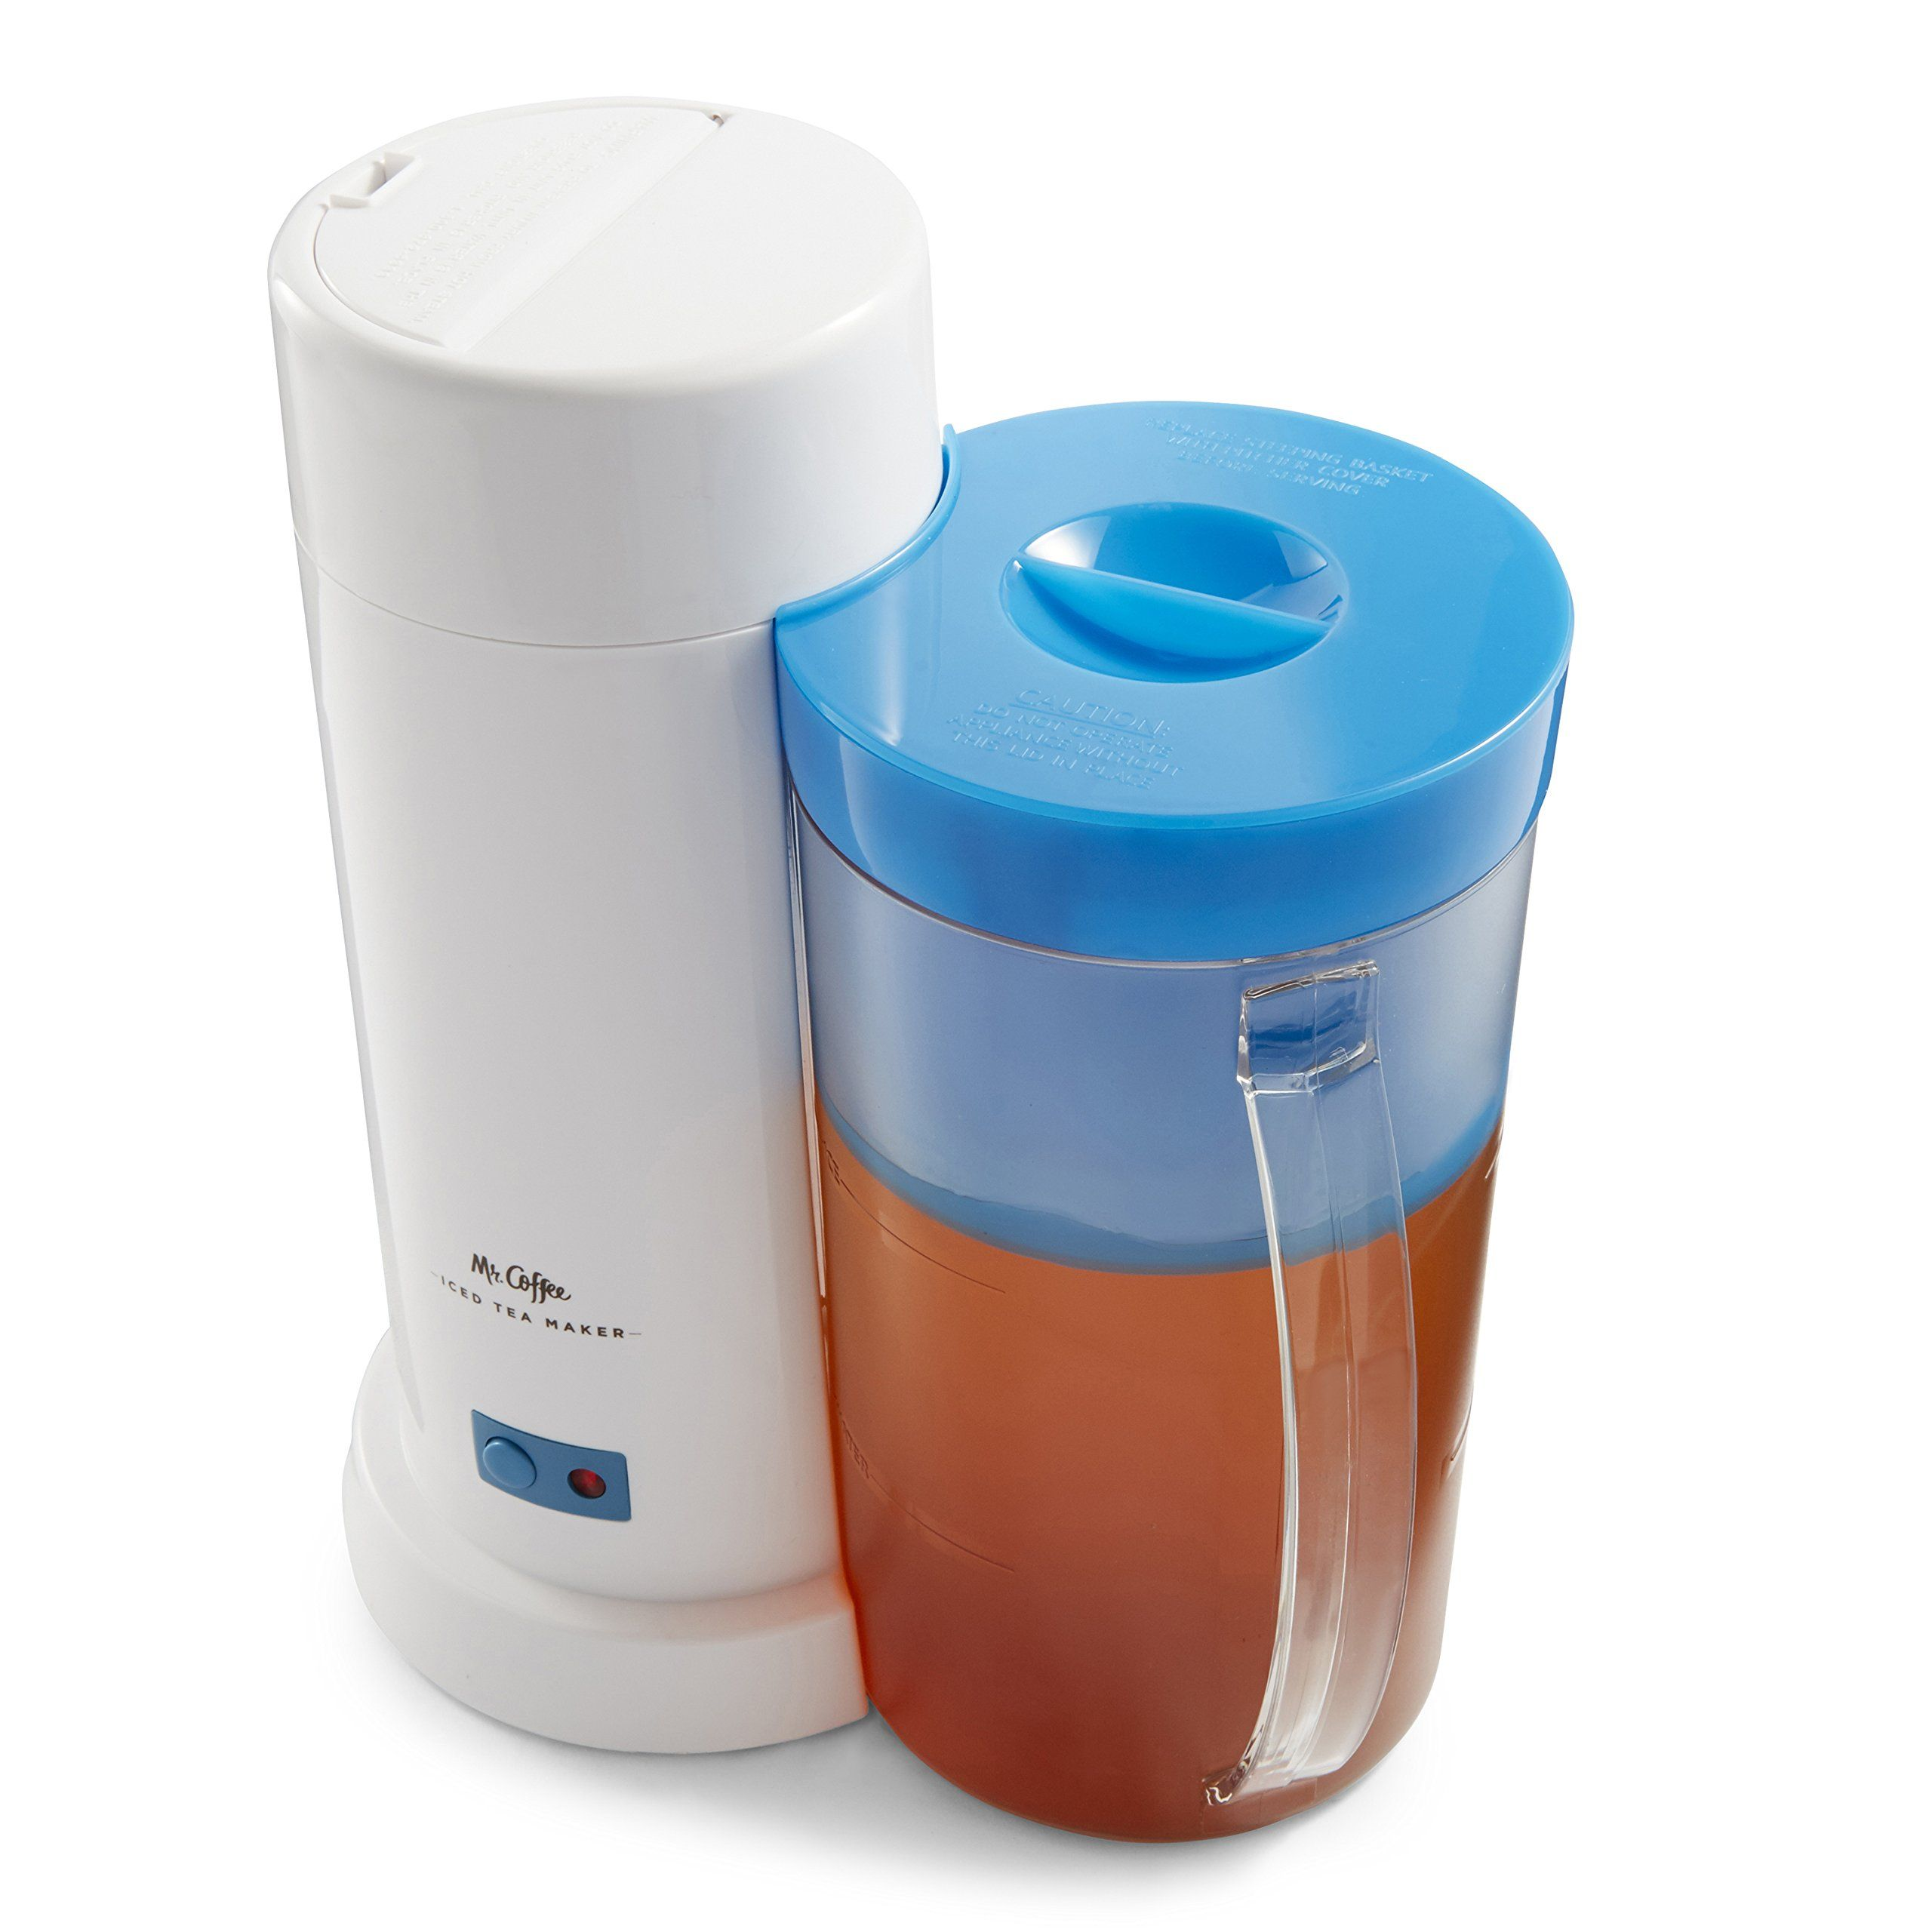 Mr. Coffee TM1 2Quart Iced Tea Maker for Loose or Bagged